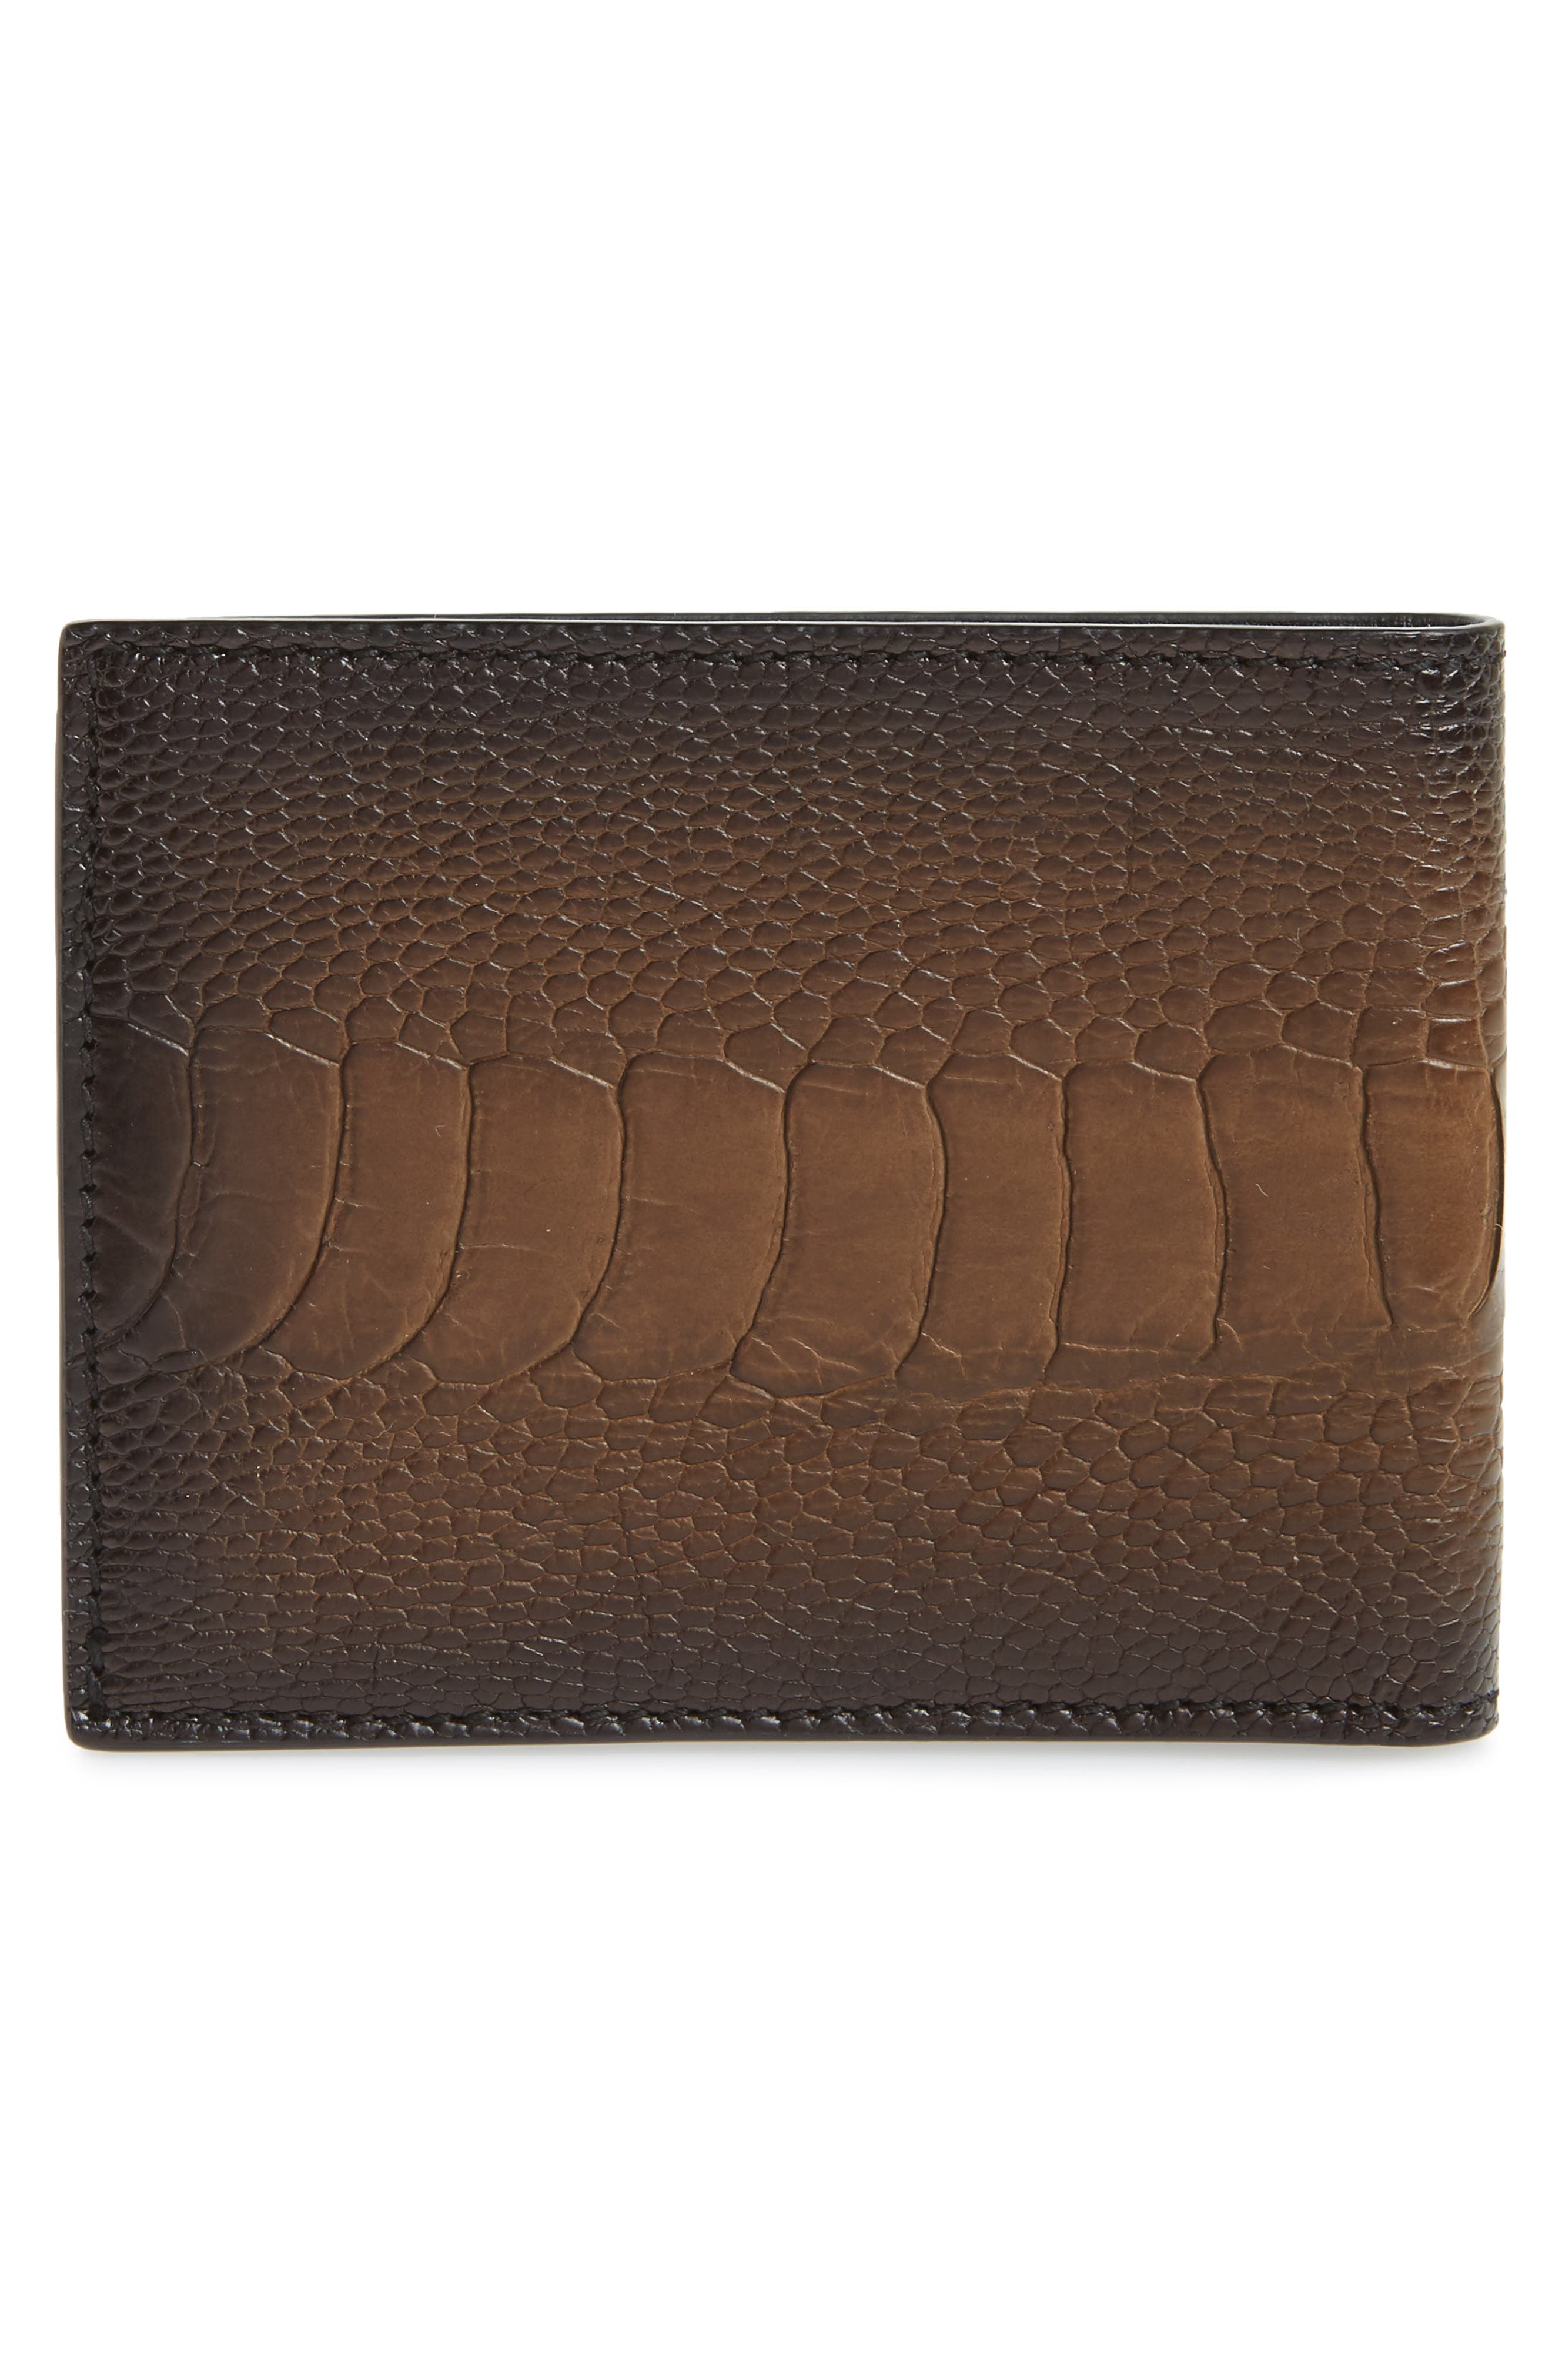 Leather Wallet,                             Alternate thumbnail 3, color,                             Sepia